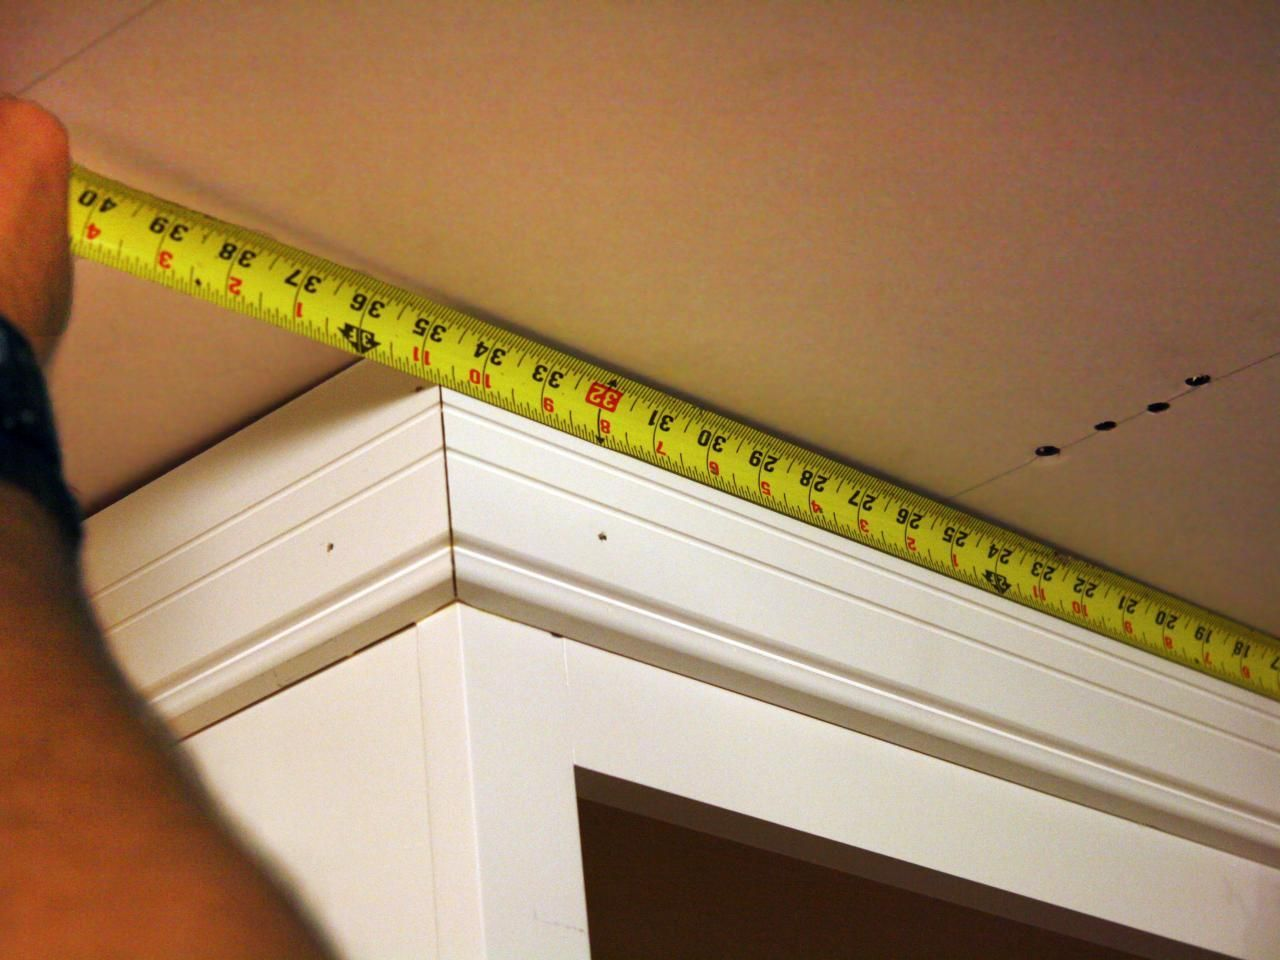 How To Install Kitchen Cabinet Crown Molding Add Crown Molding To Y In 2020 Kitchen Cabinet Crown Molding Installing Kitchen Cabinets Crown Moulding Kitchen Cabinets